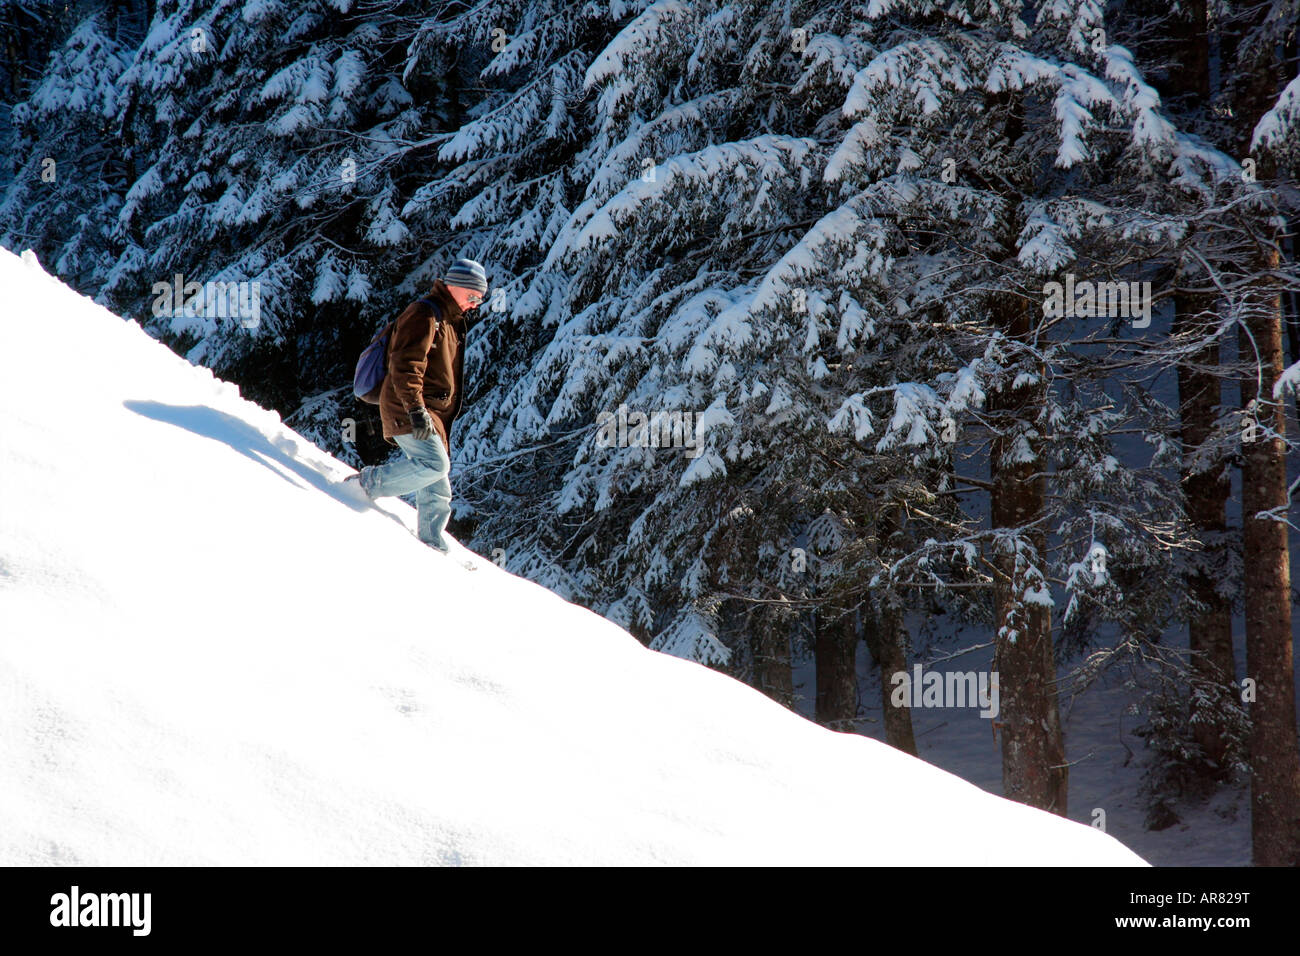 walking down a snowcovered hill Steinbachtal near Lenggries Bavaria Germany Europe - Stock Image